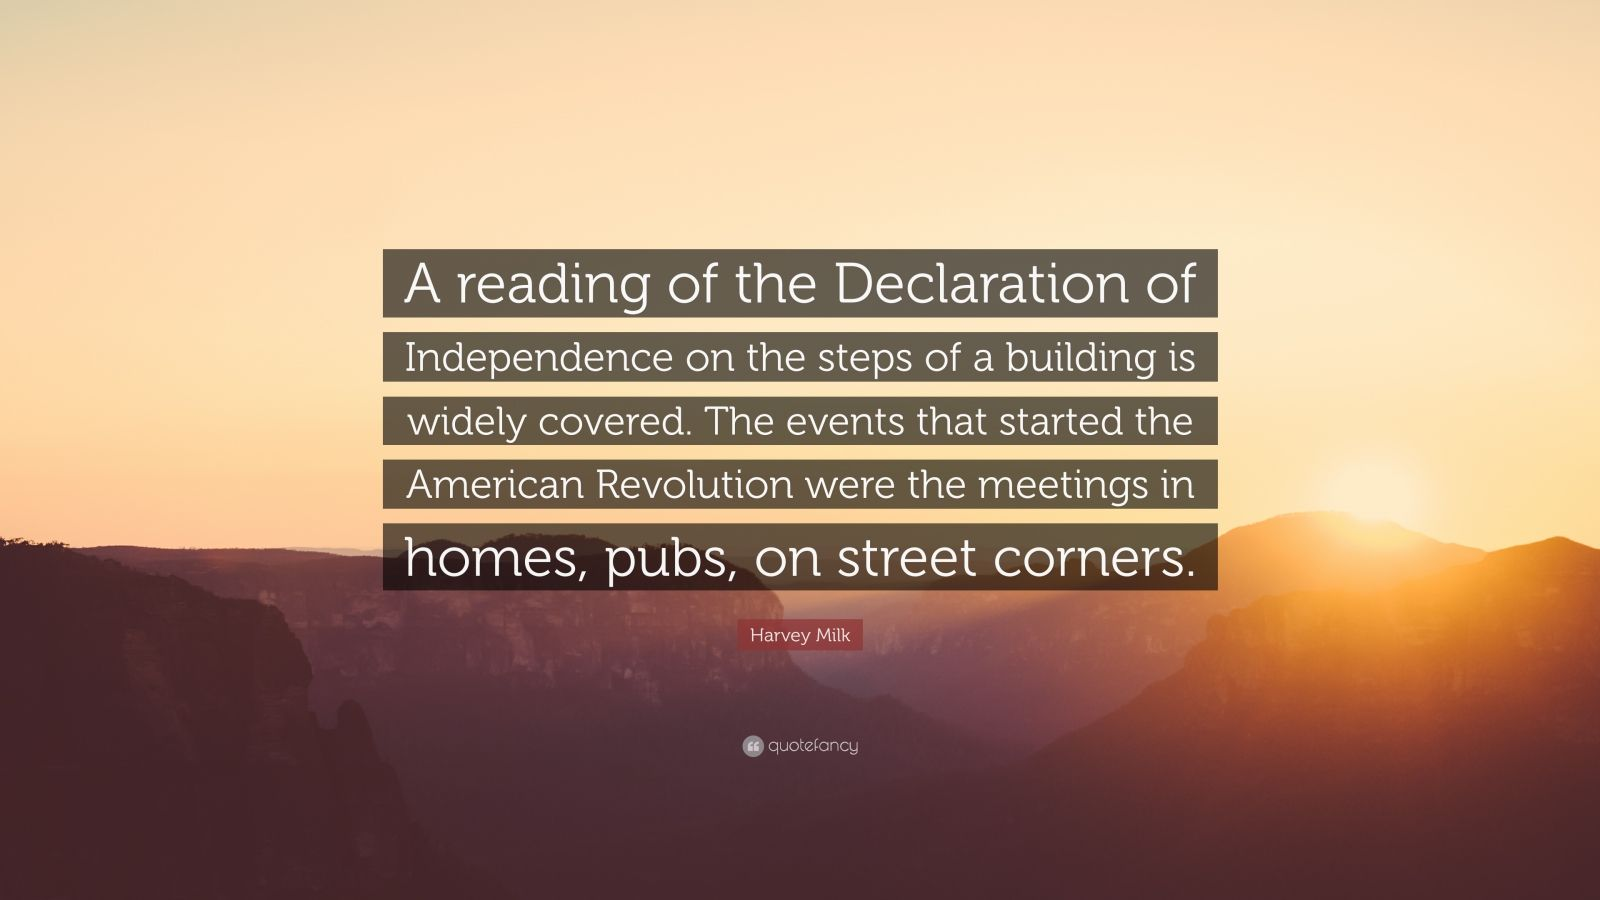 """Harvey Milk Quote: """"A reading of the Declaration of Independence on the steps of a building is widely covered. The events that started the American Revolution were the meetings in homes, pubs, on street corners."""""""